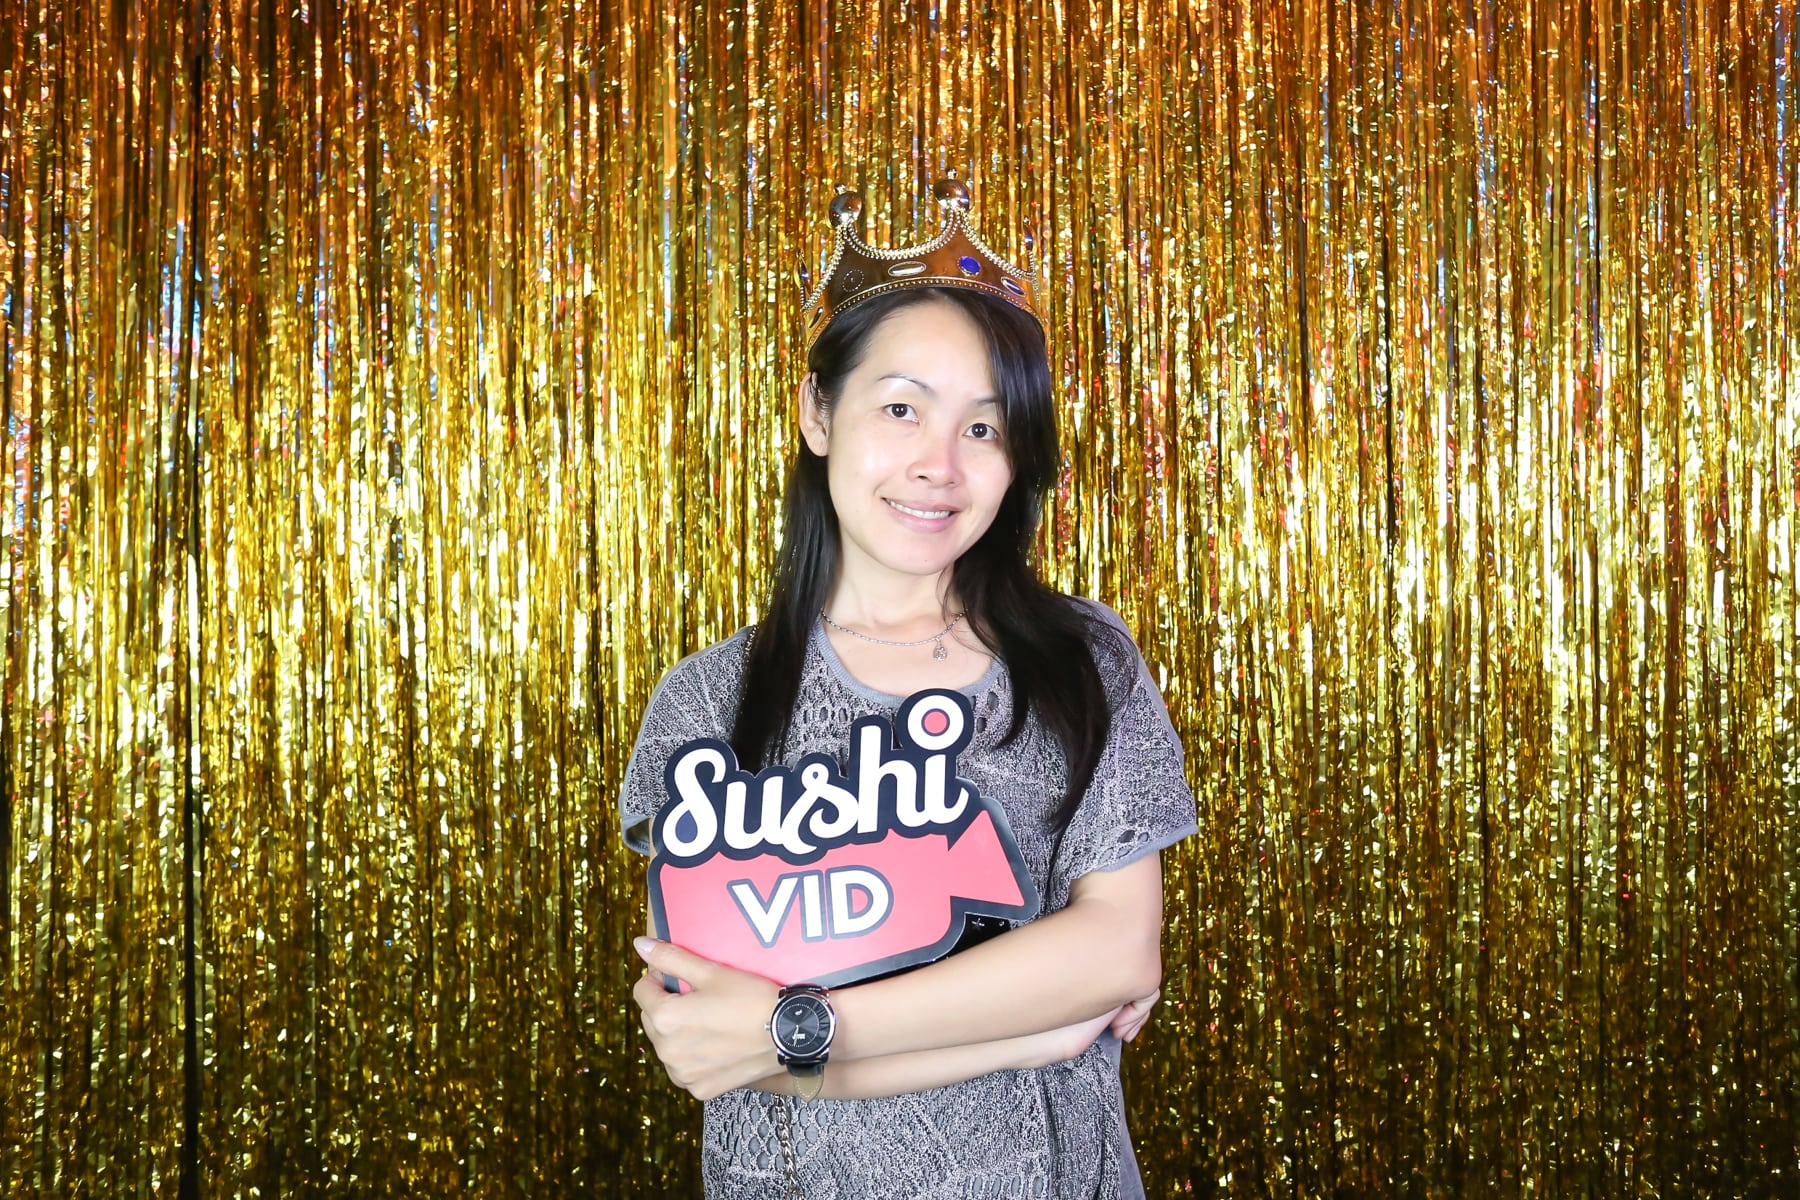 Sushivid+crunch+tagbooth+28